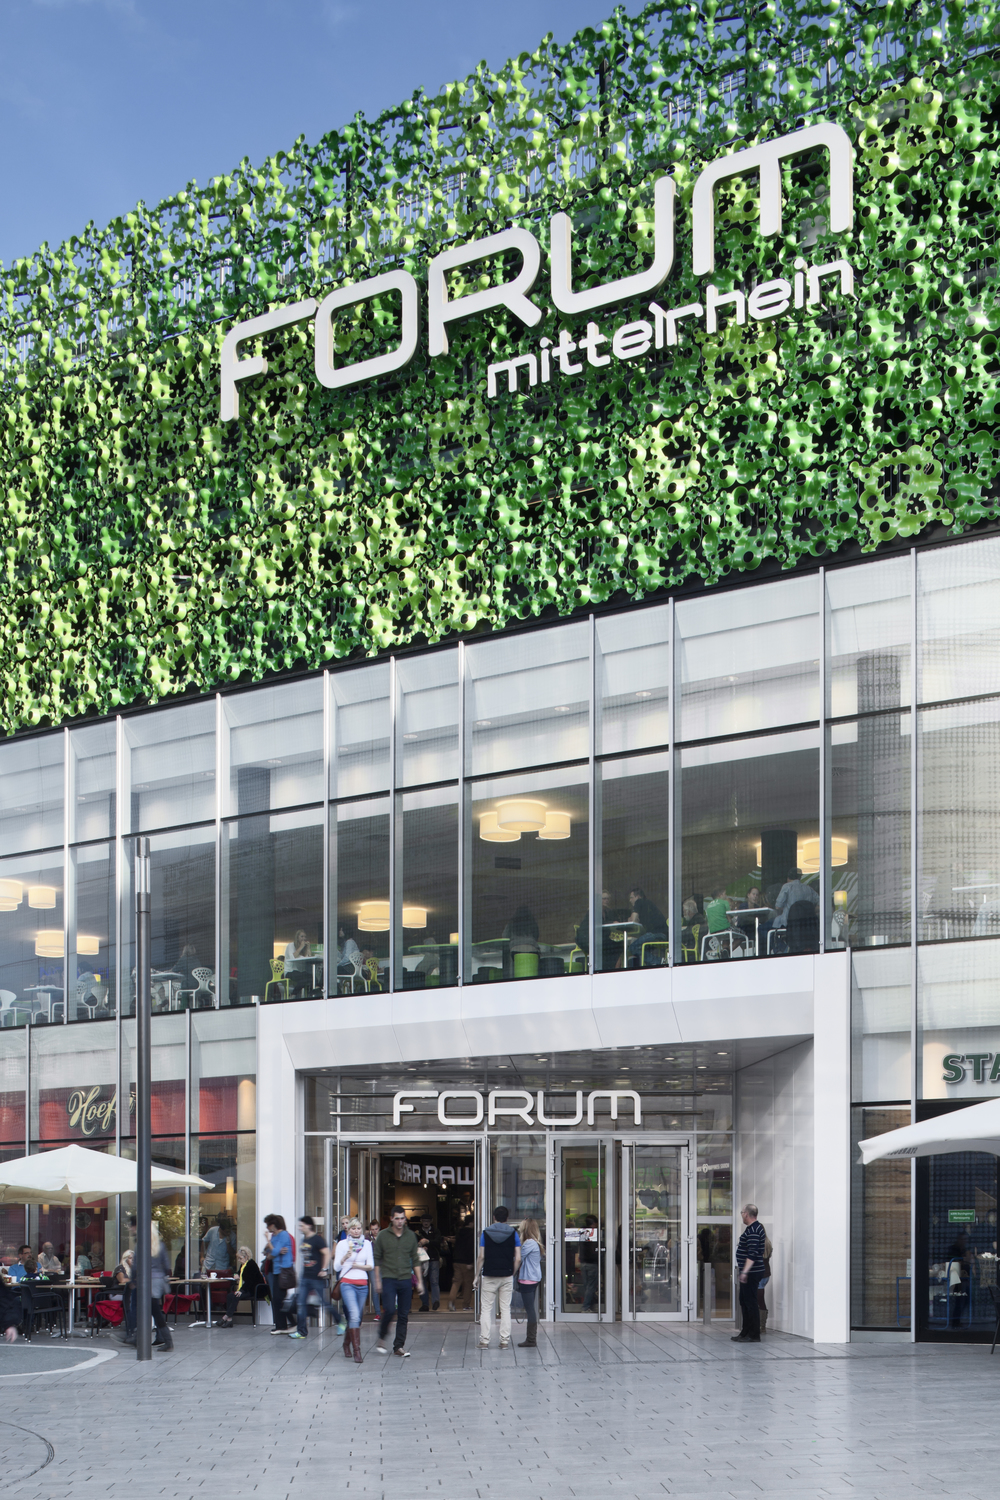 Forum Mittelrhein Koblenz | CROSS Architecture